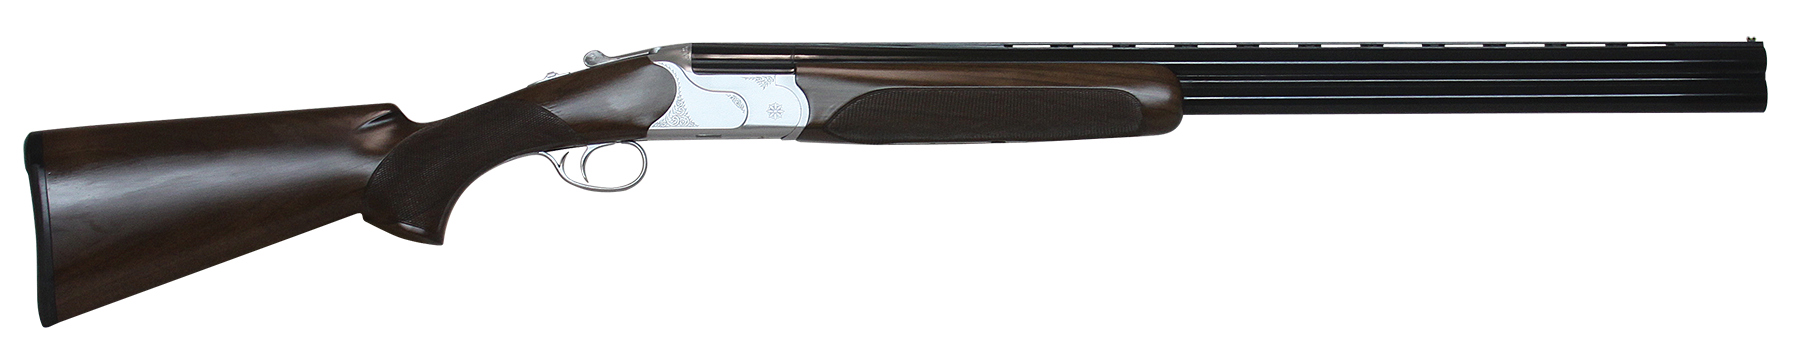 CZ-USA Redhead Premier Over/Under Shotgun 3'' 20 Gauge 28'' Silver - Turkish Walnut